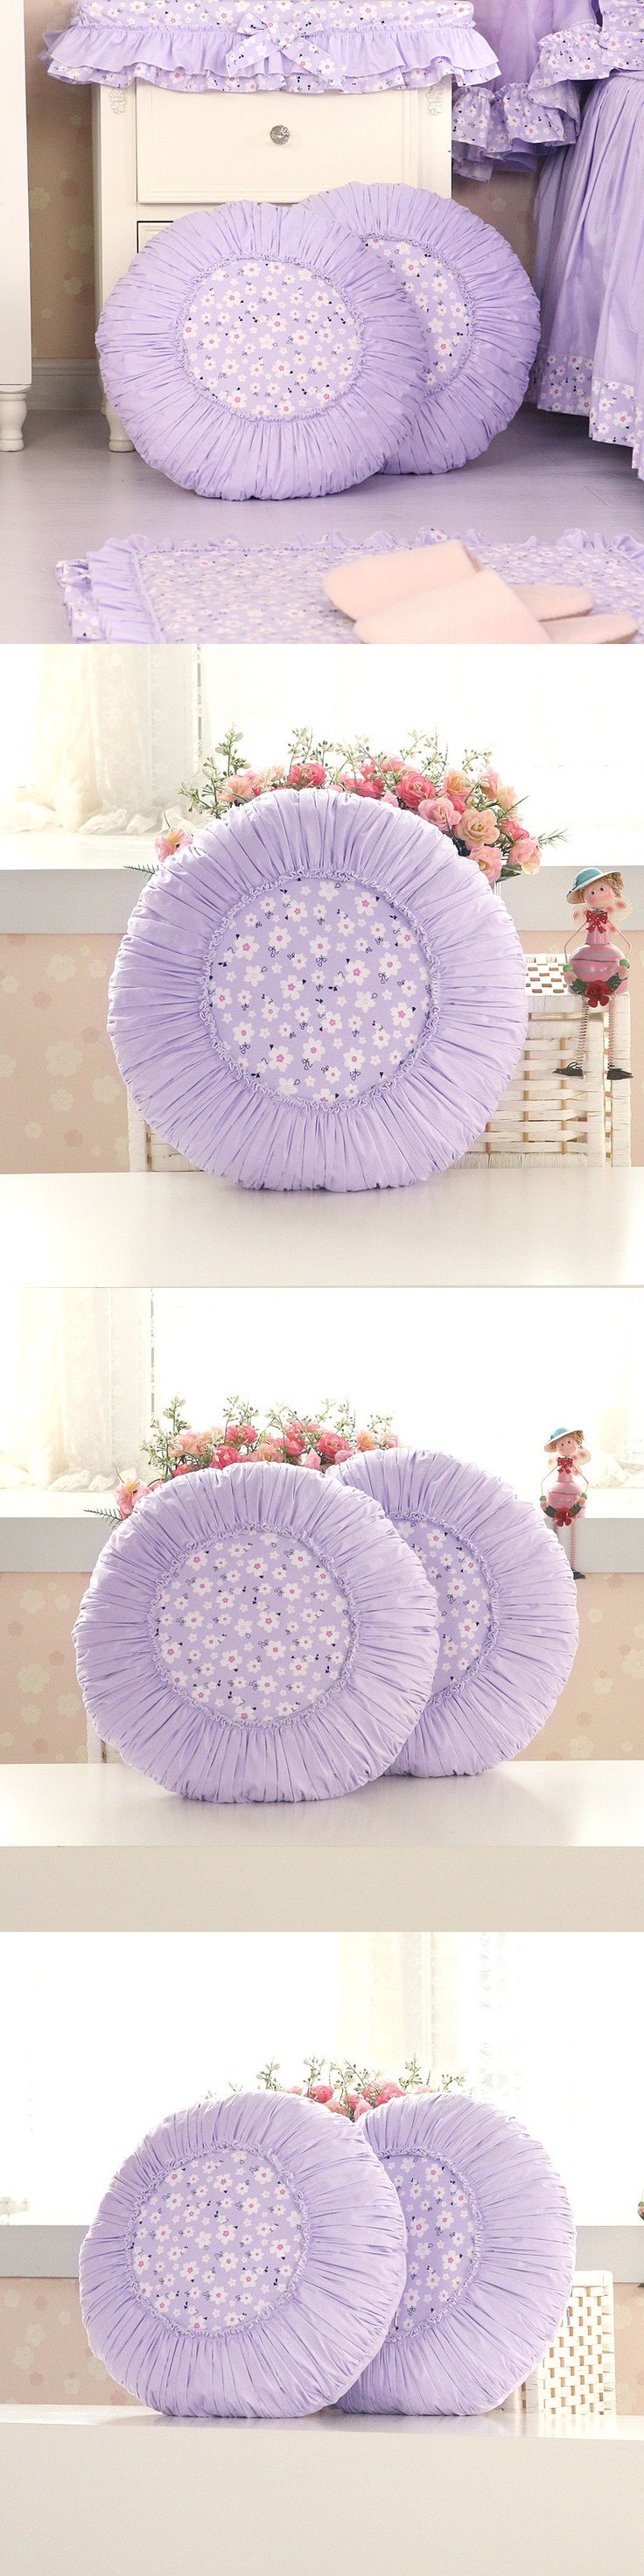 Patio furniture cushions 22 inches round free home design ideas - Patio Furniture Cushions 22 Inches Round Free Home Design Ideas Luxury 45cm Round Seat Cushions Download